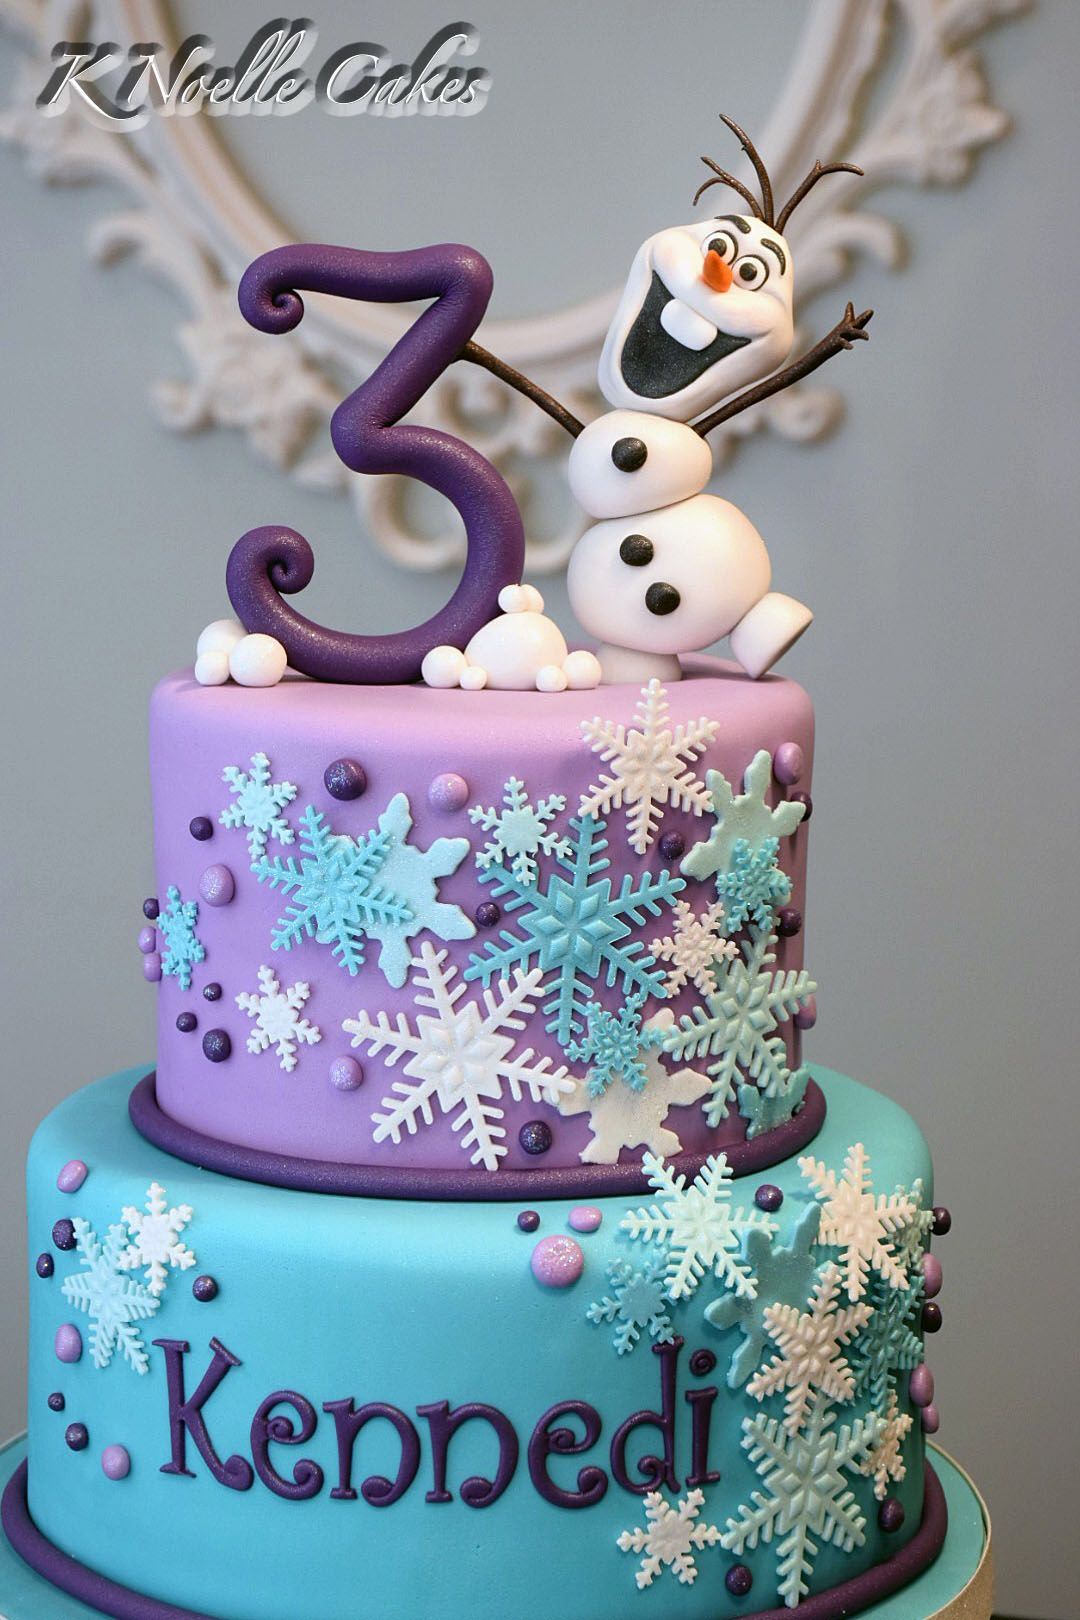 Swell Frozen Theme Cake With Olaf By K Noelle Cakes Tortas Frozen Birthday Cards Printable Opercafe Filternl